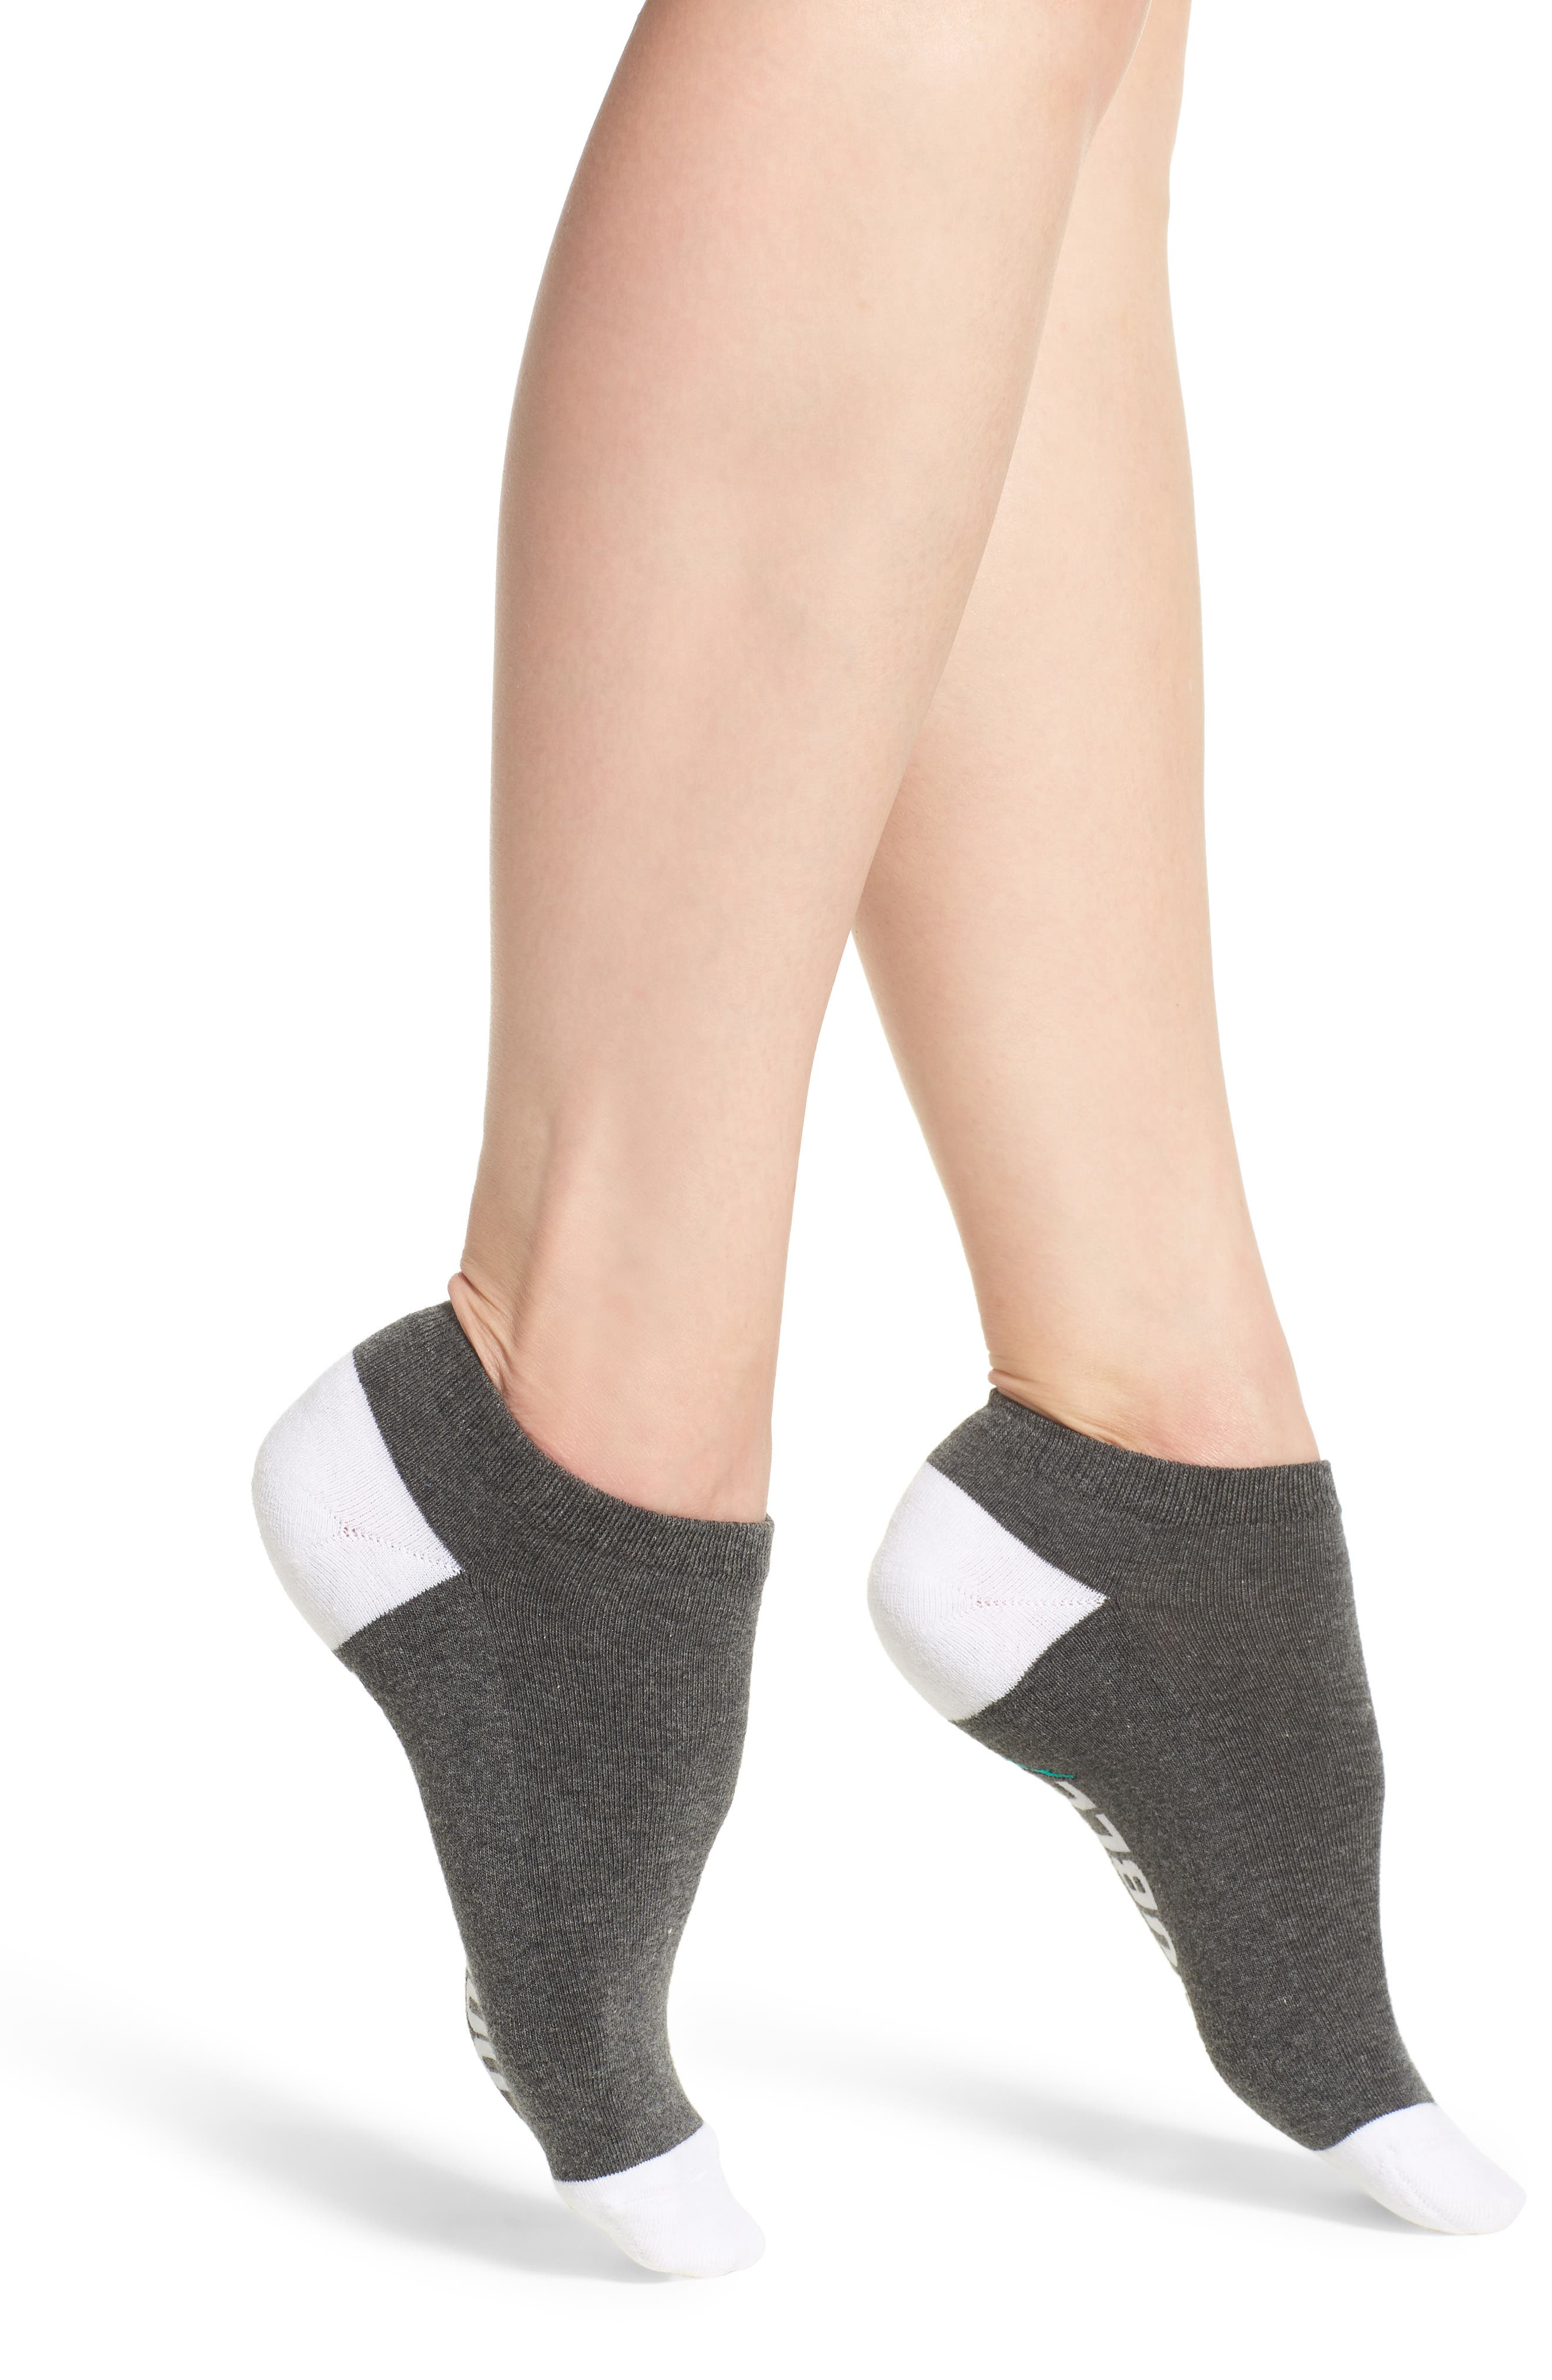 Lookin' For Trouble Low-Cut Socks,                         Main,                         color, Charcoal Heather